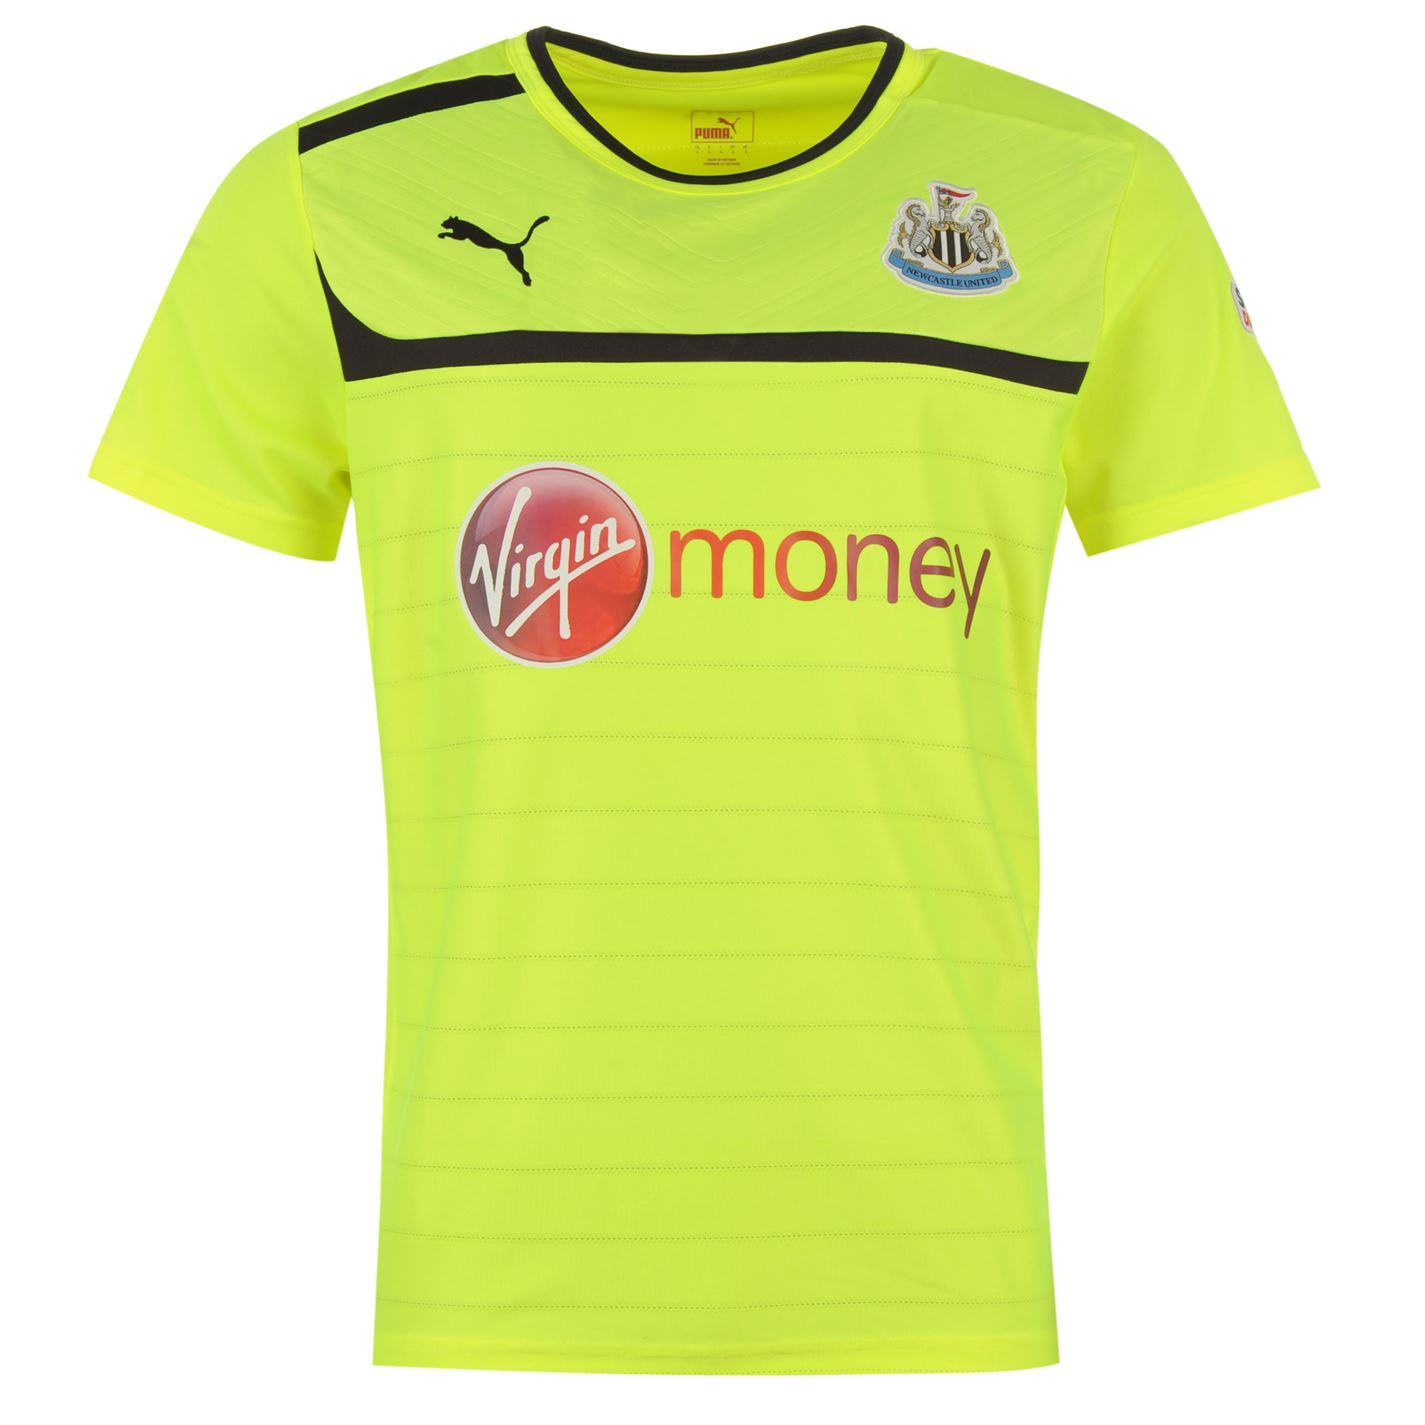 PUMA NEWCASTLE UNITED TRAINING JERSEY 2012 2013 Soccer Football NUFC EPL Mens